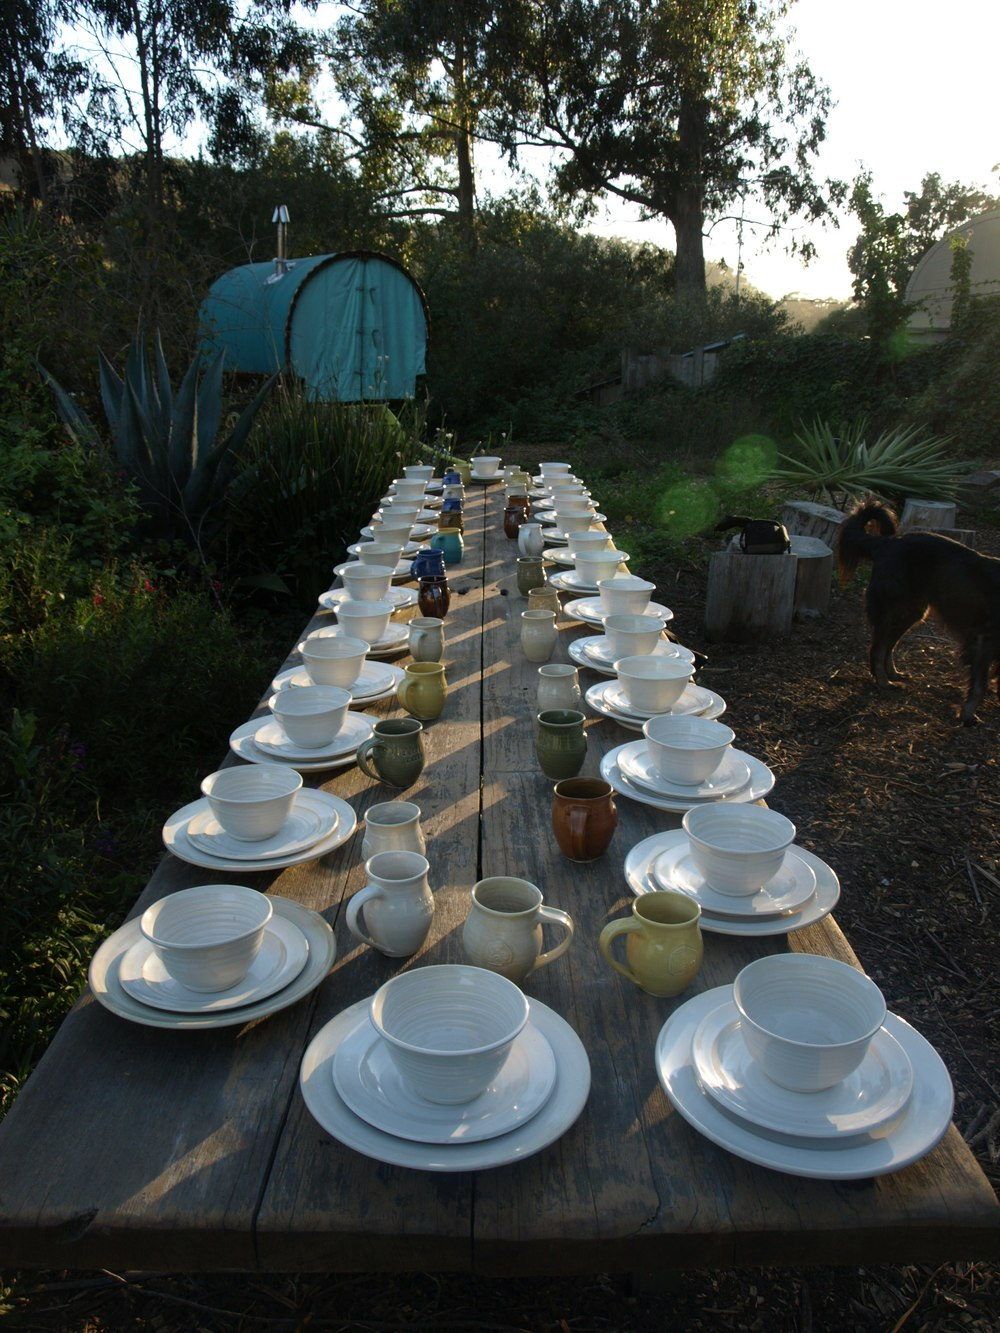 Harley Farms dinnerware